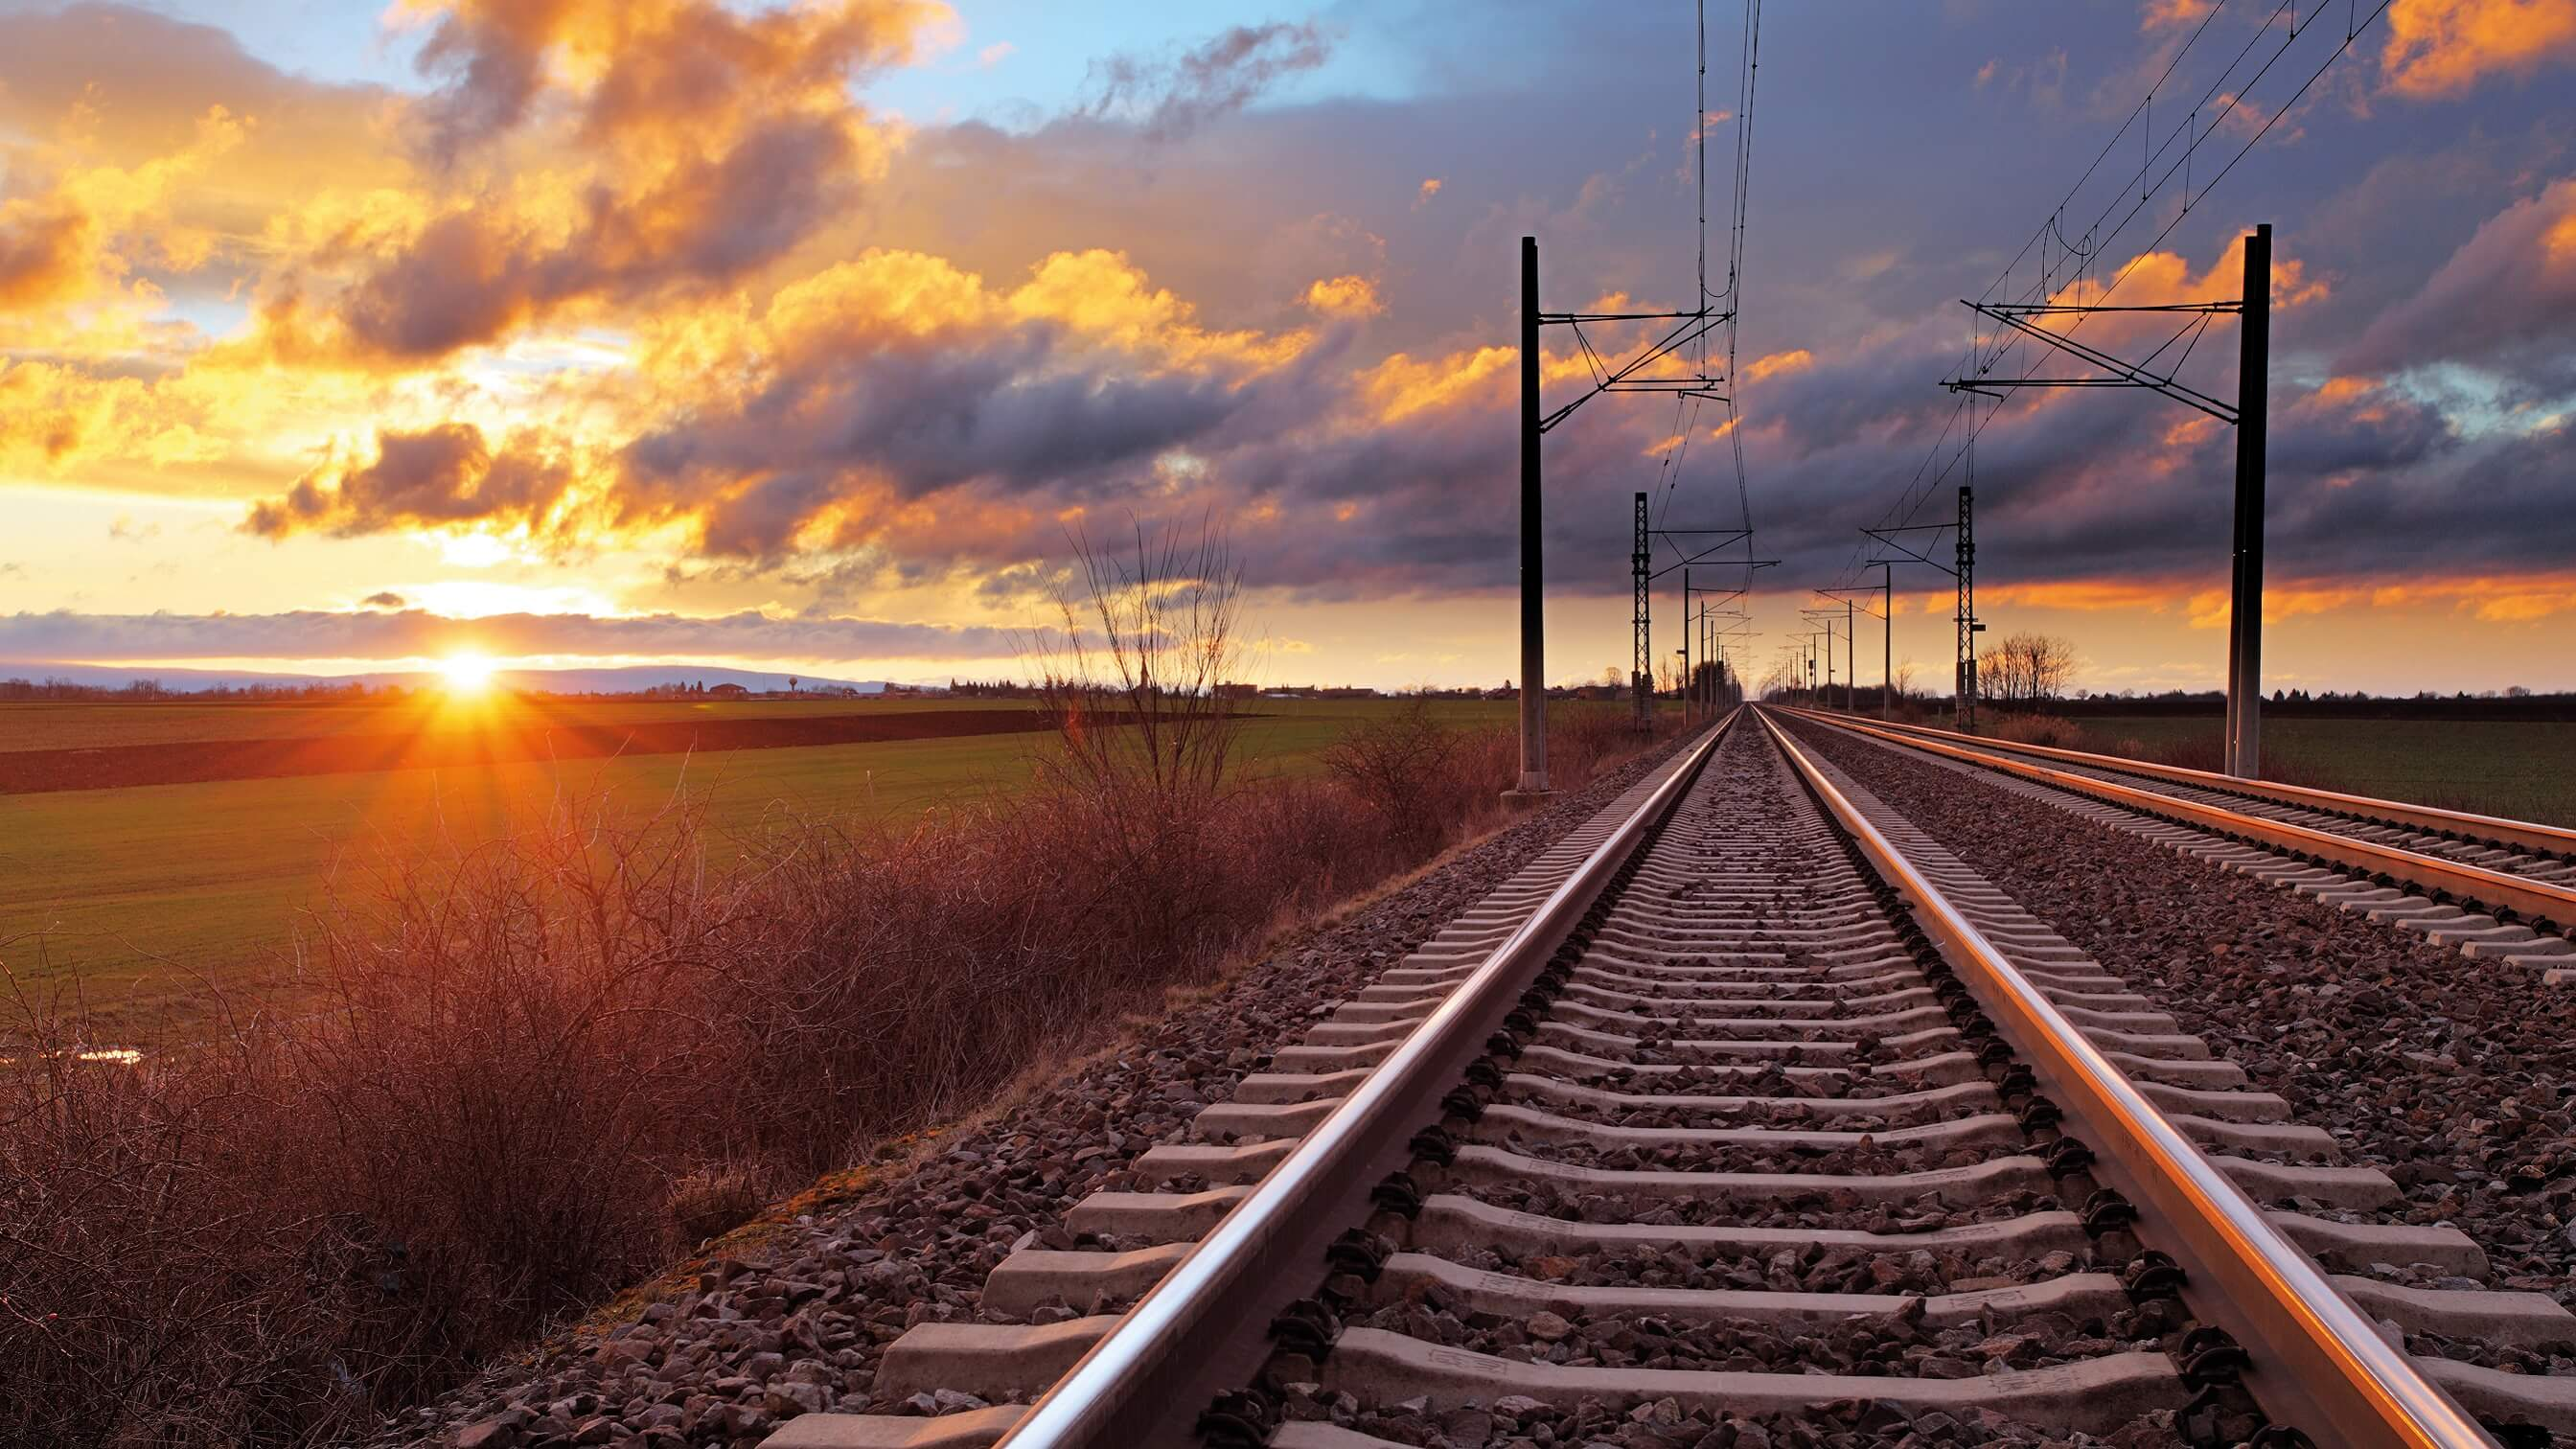 Railway lines at Sunset